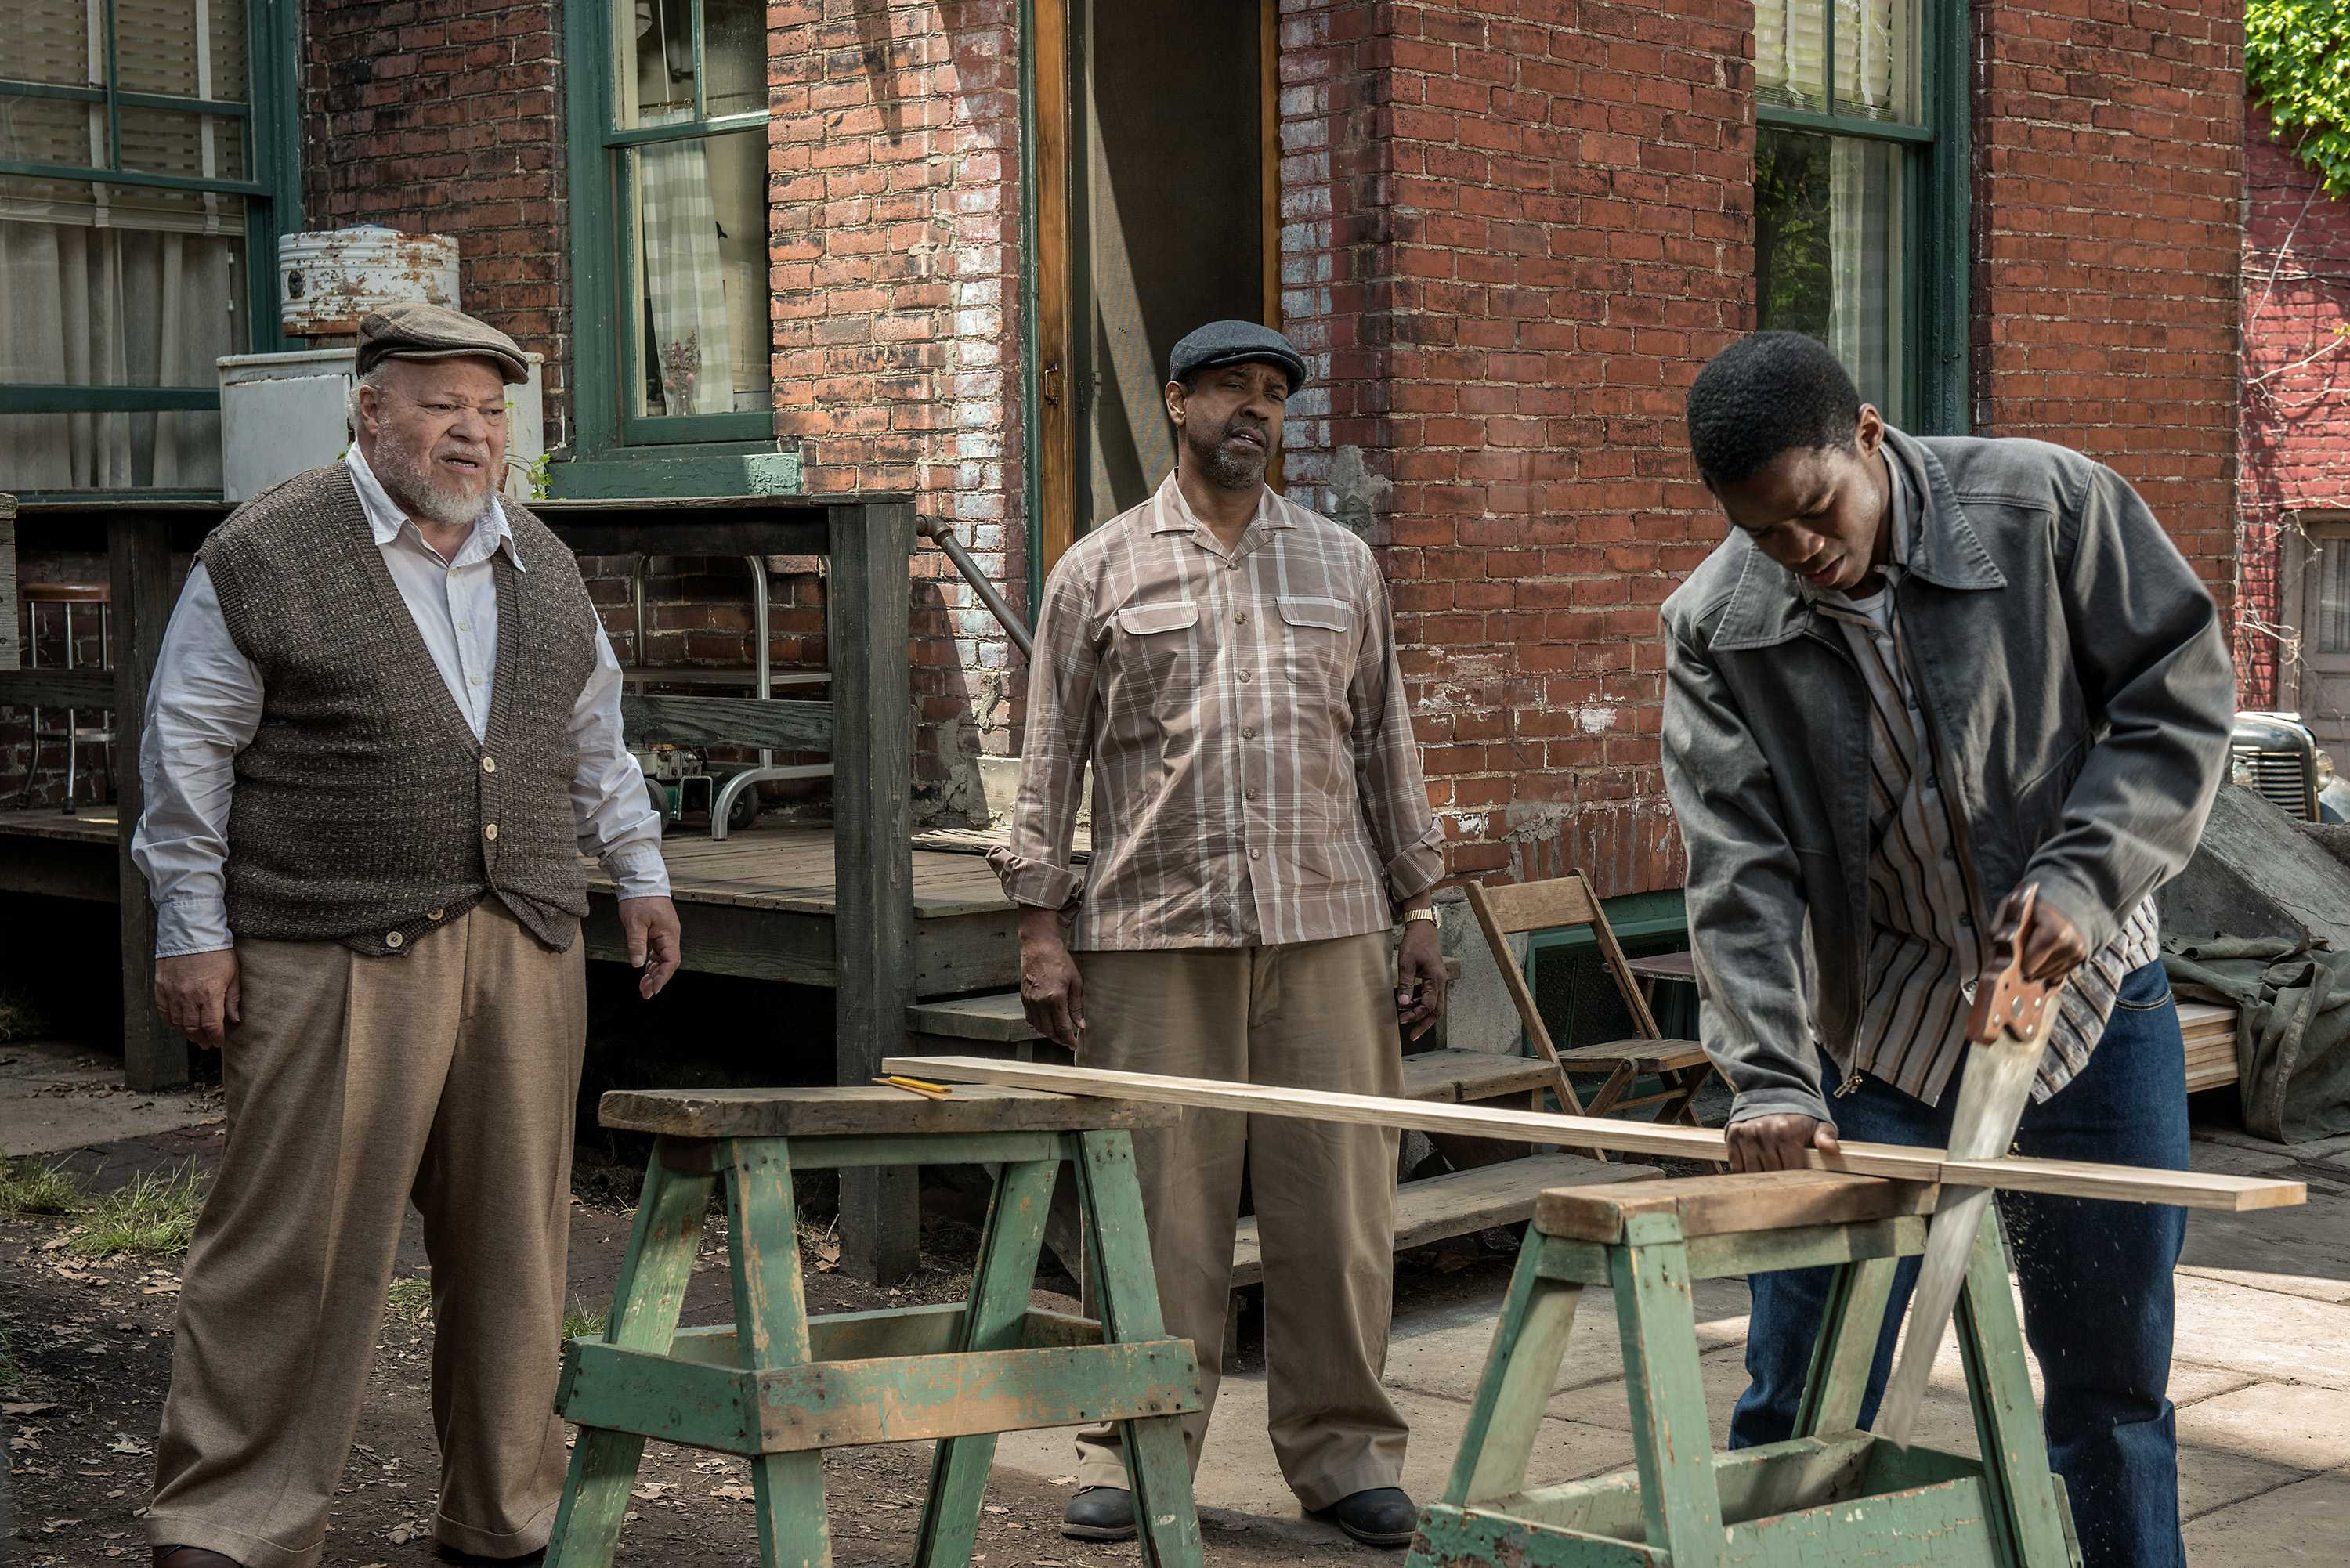 Denzel Washington (center) plays Troy Maxson, Stephen McKinley Henderson (left) plays Jim Bono and Jovan Adepo (right) plays Cory in the film